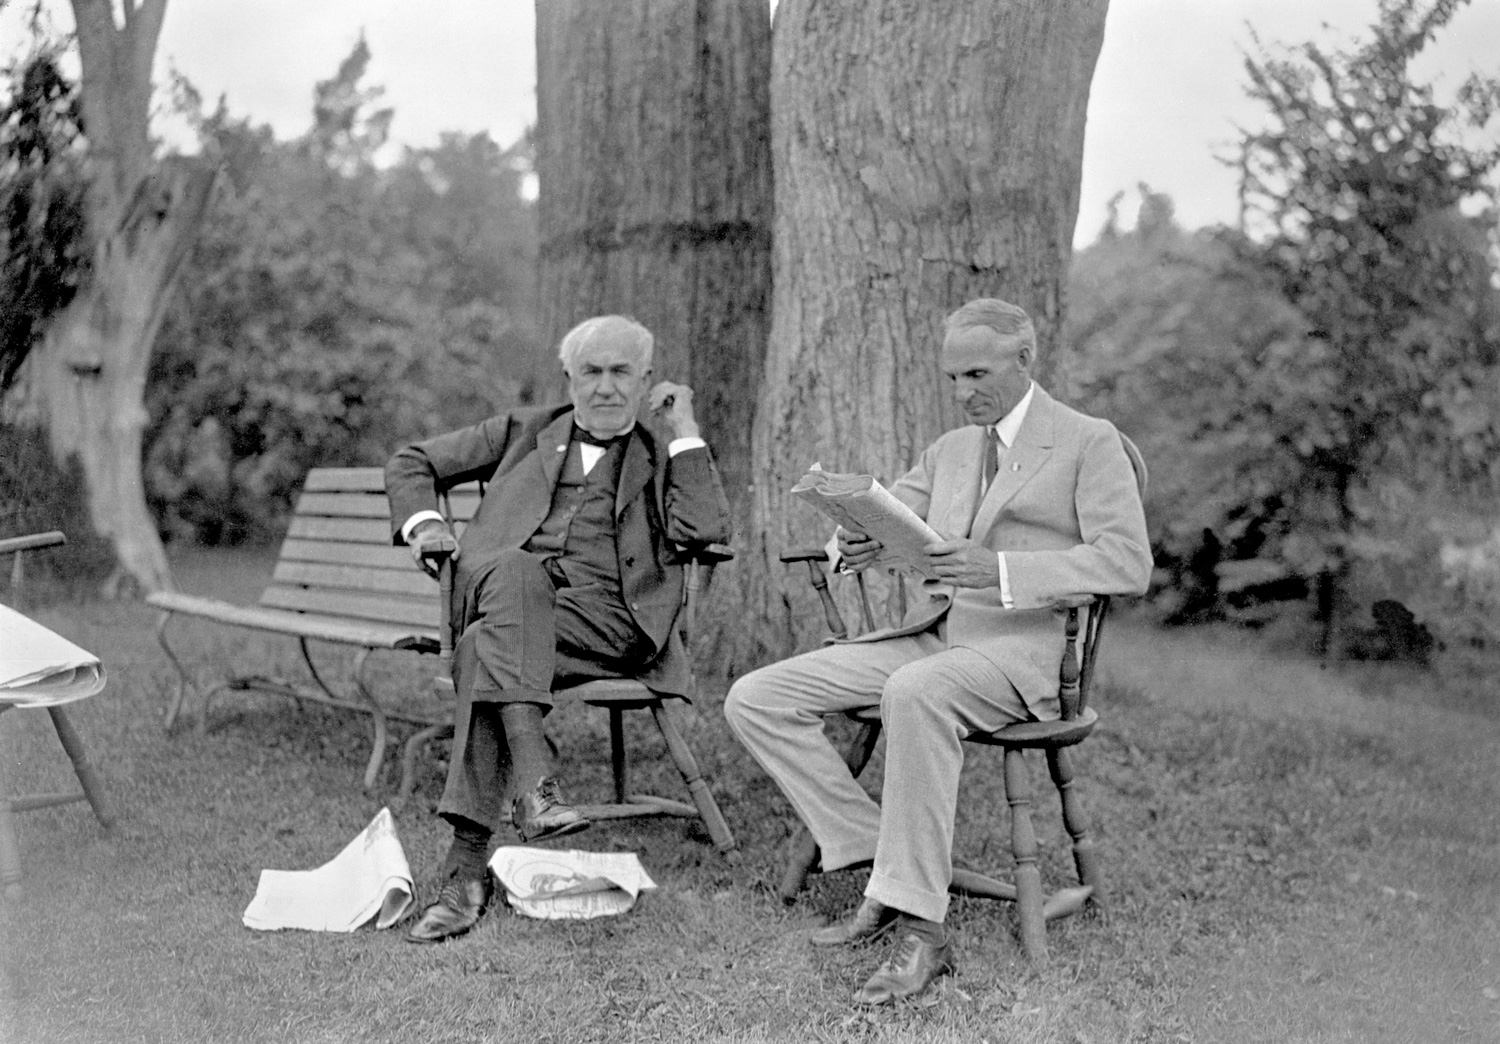 Henry Ford and Thomas Edison meeting